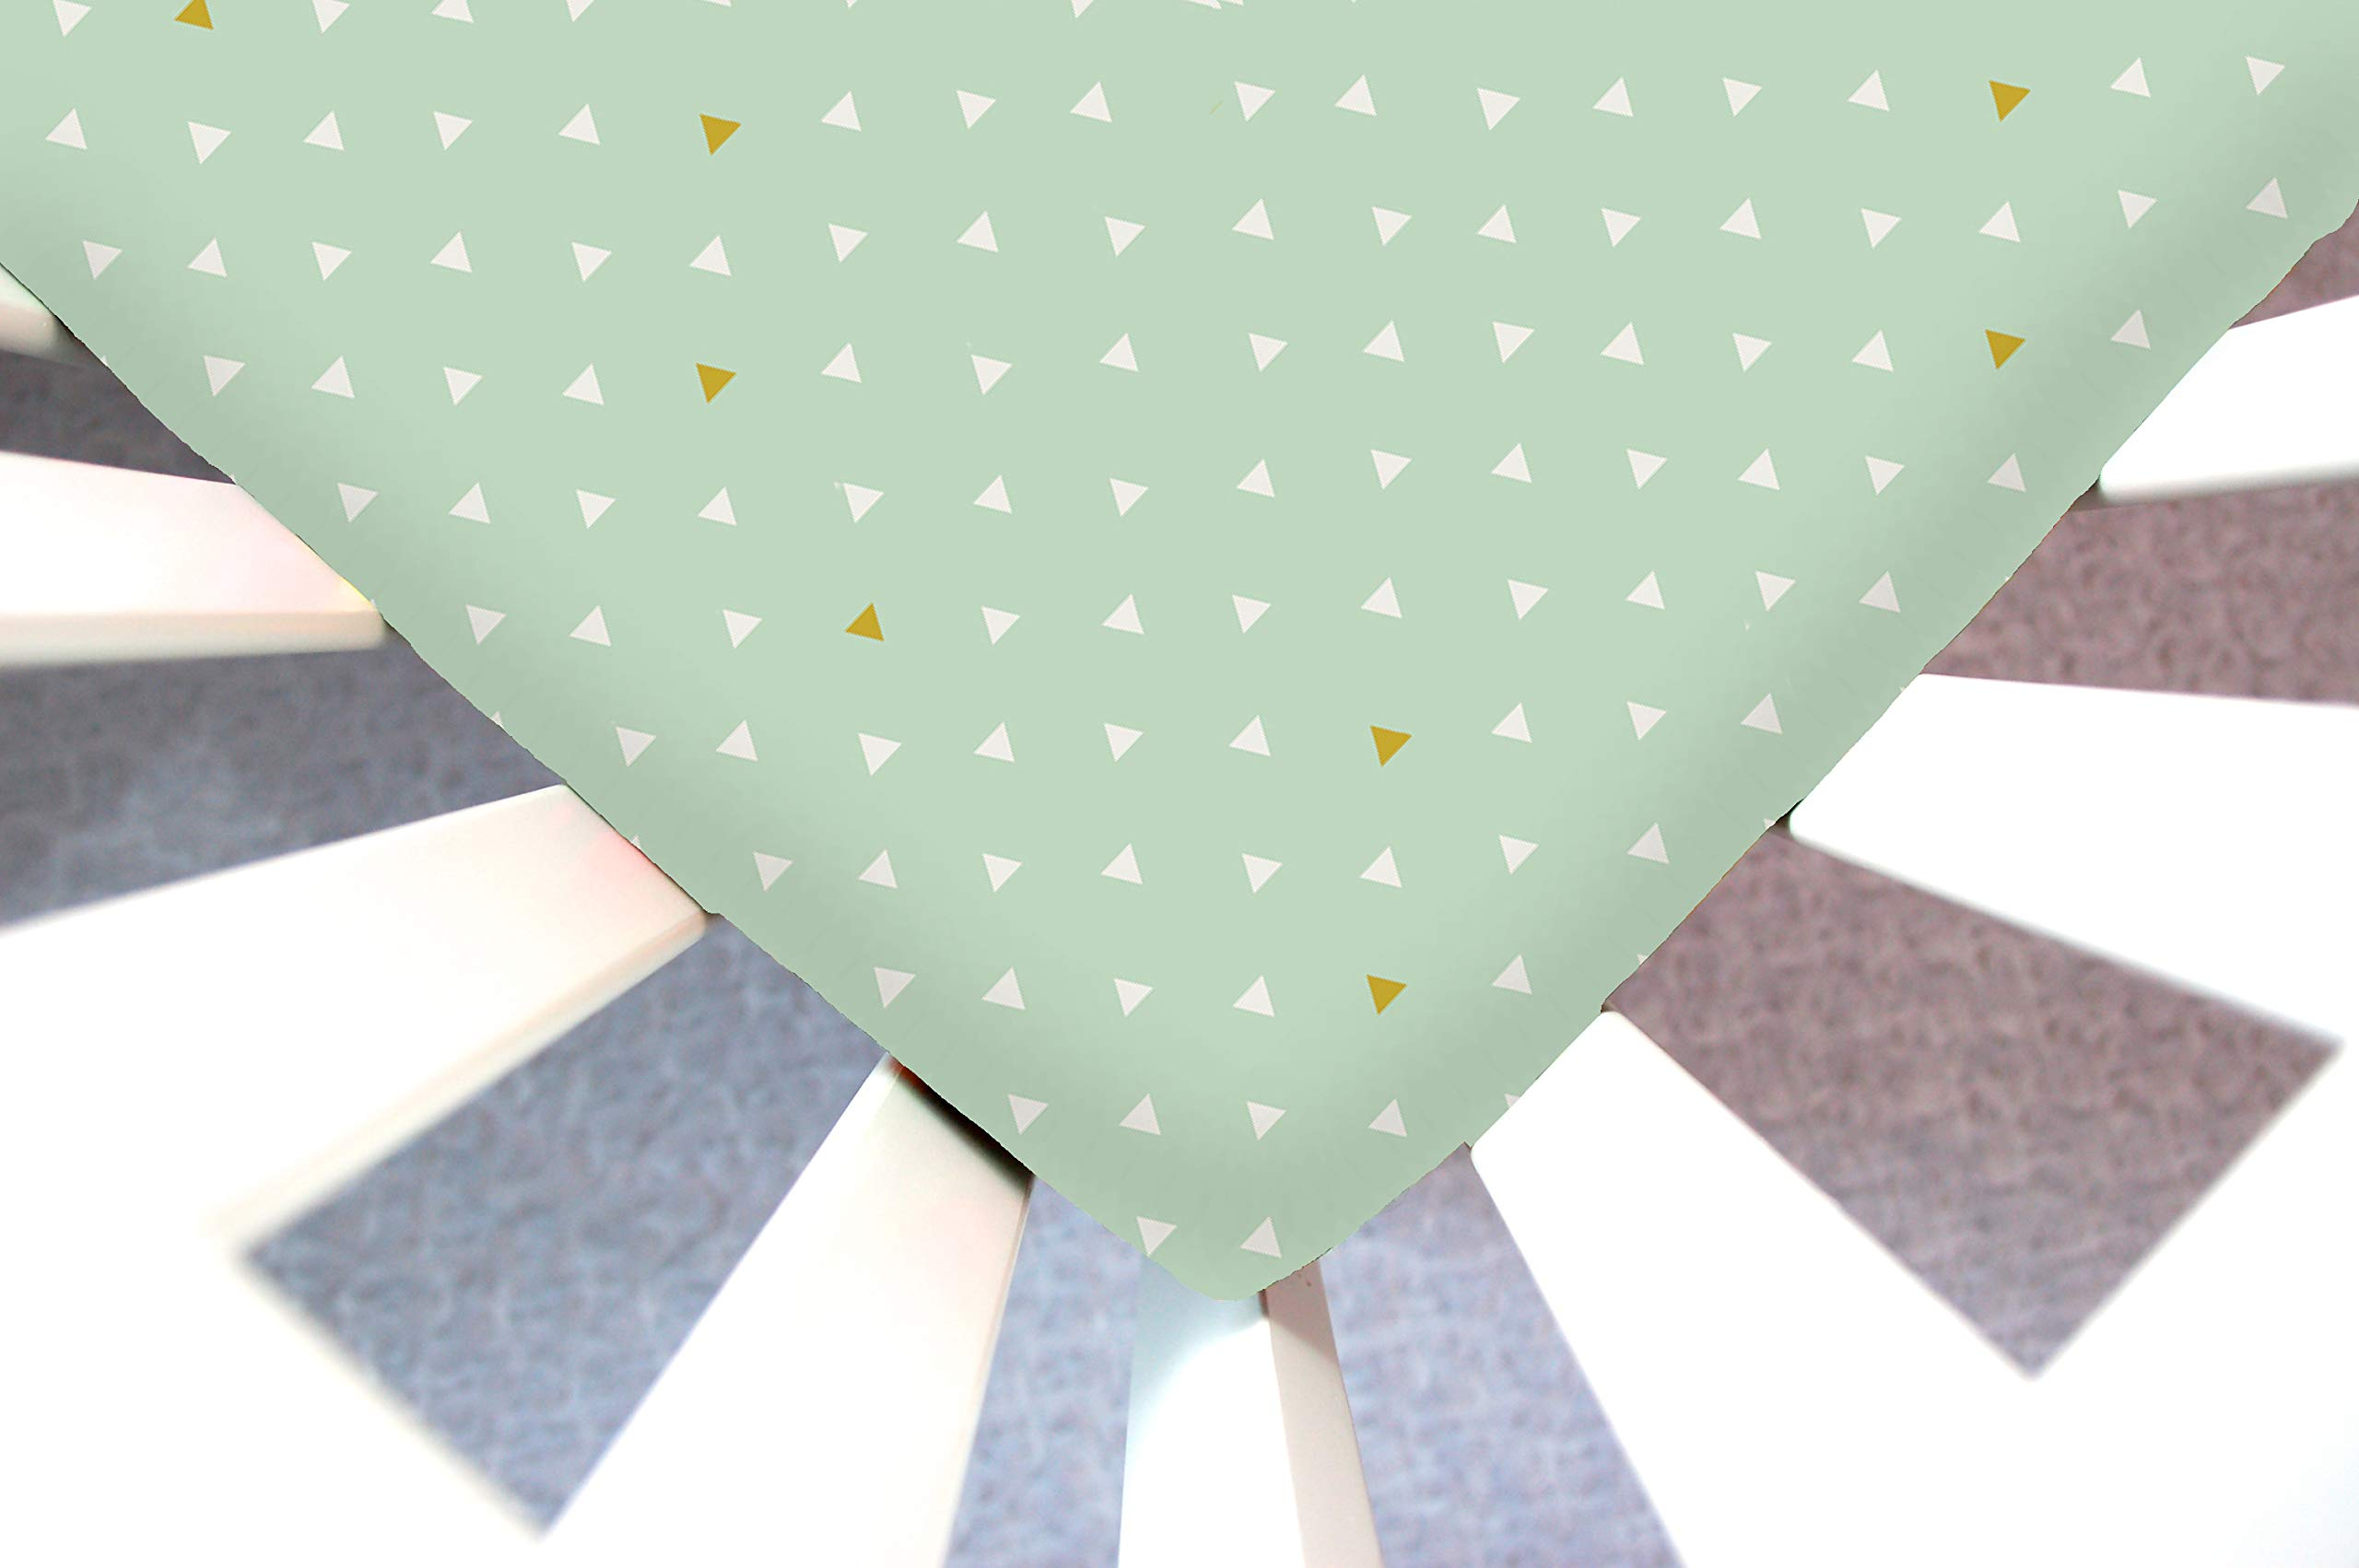 Little Moose by Liza Handmade Sheet Made to Fit Baby Bjorn Cradle in Mint Triangle Tokens (White and Gold Triangles on Mint). This Sheet was Not Created or Sold by Baby Bjorn. by Little Moose By Liza LLC